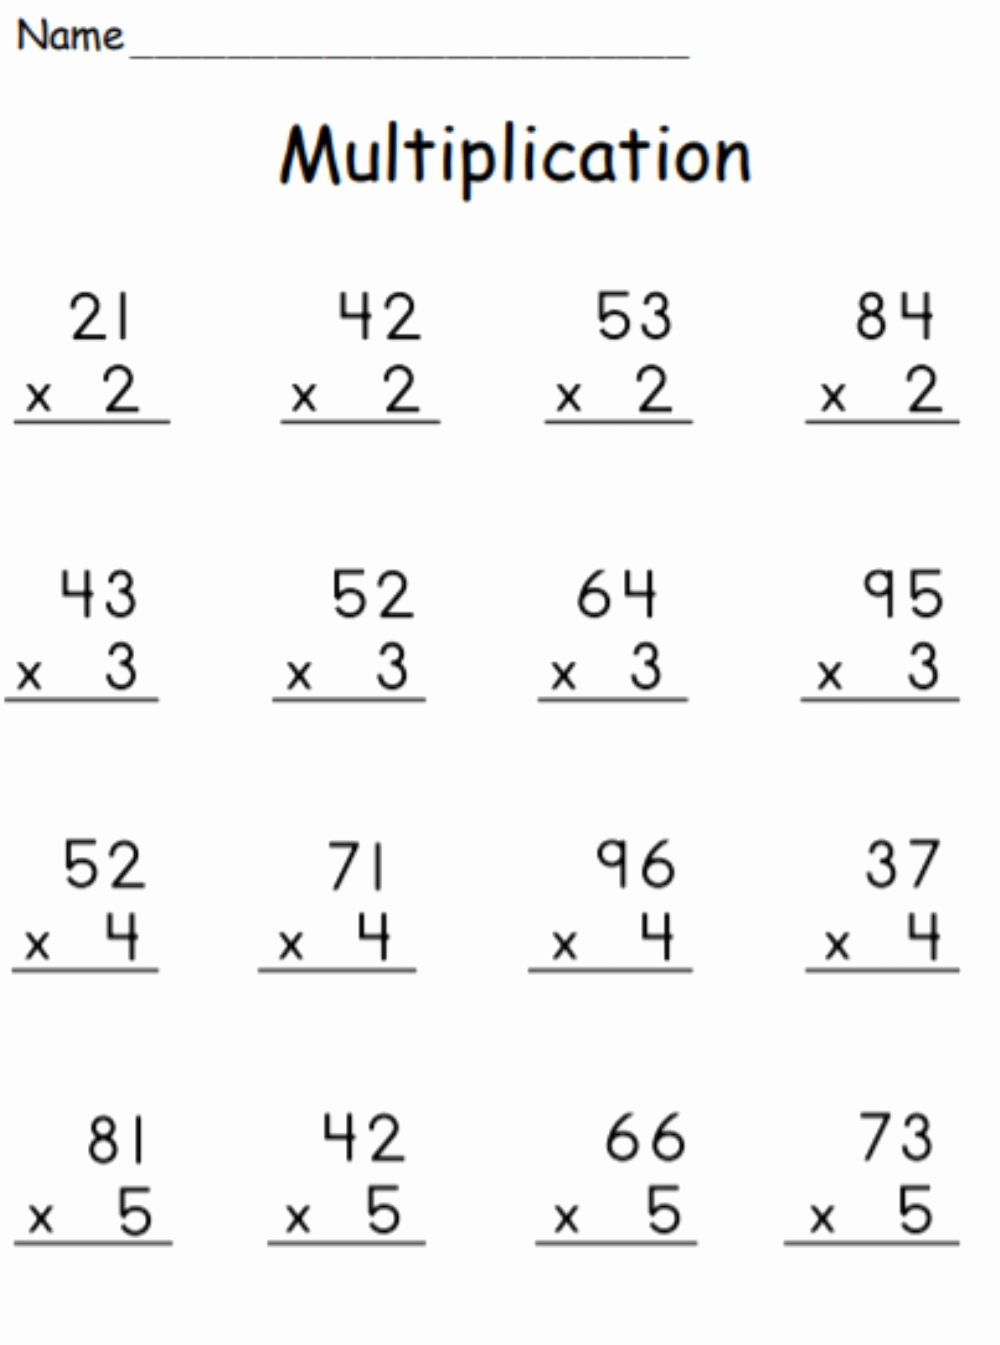 Regrouping Multiplication Worksheets top Multiplication 2 Digit by 1 Digit with Regrouping